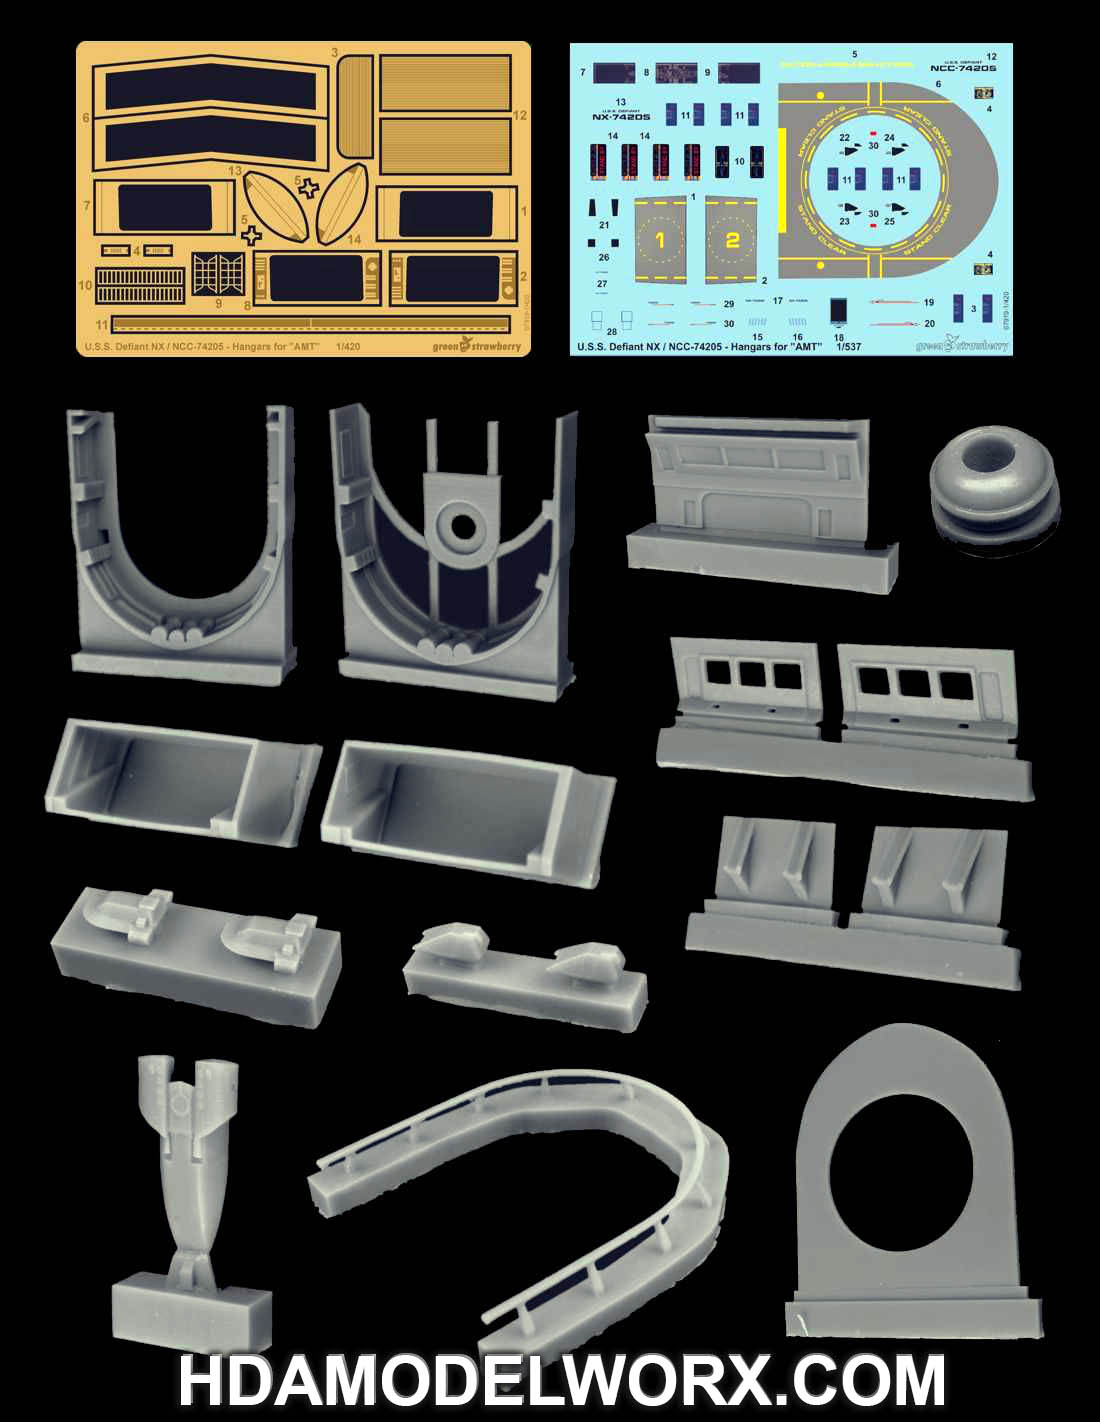 USS DEFIANT NX-74205 - HANGARS Photo etch, Resin, and Decal Set for the 1/420 Scale AMT Model Kit by GREEN STRAWBERRY